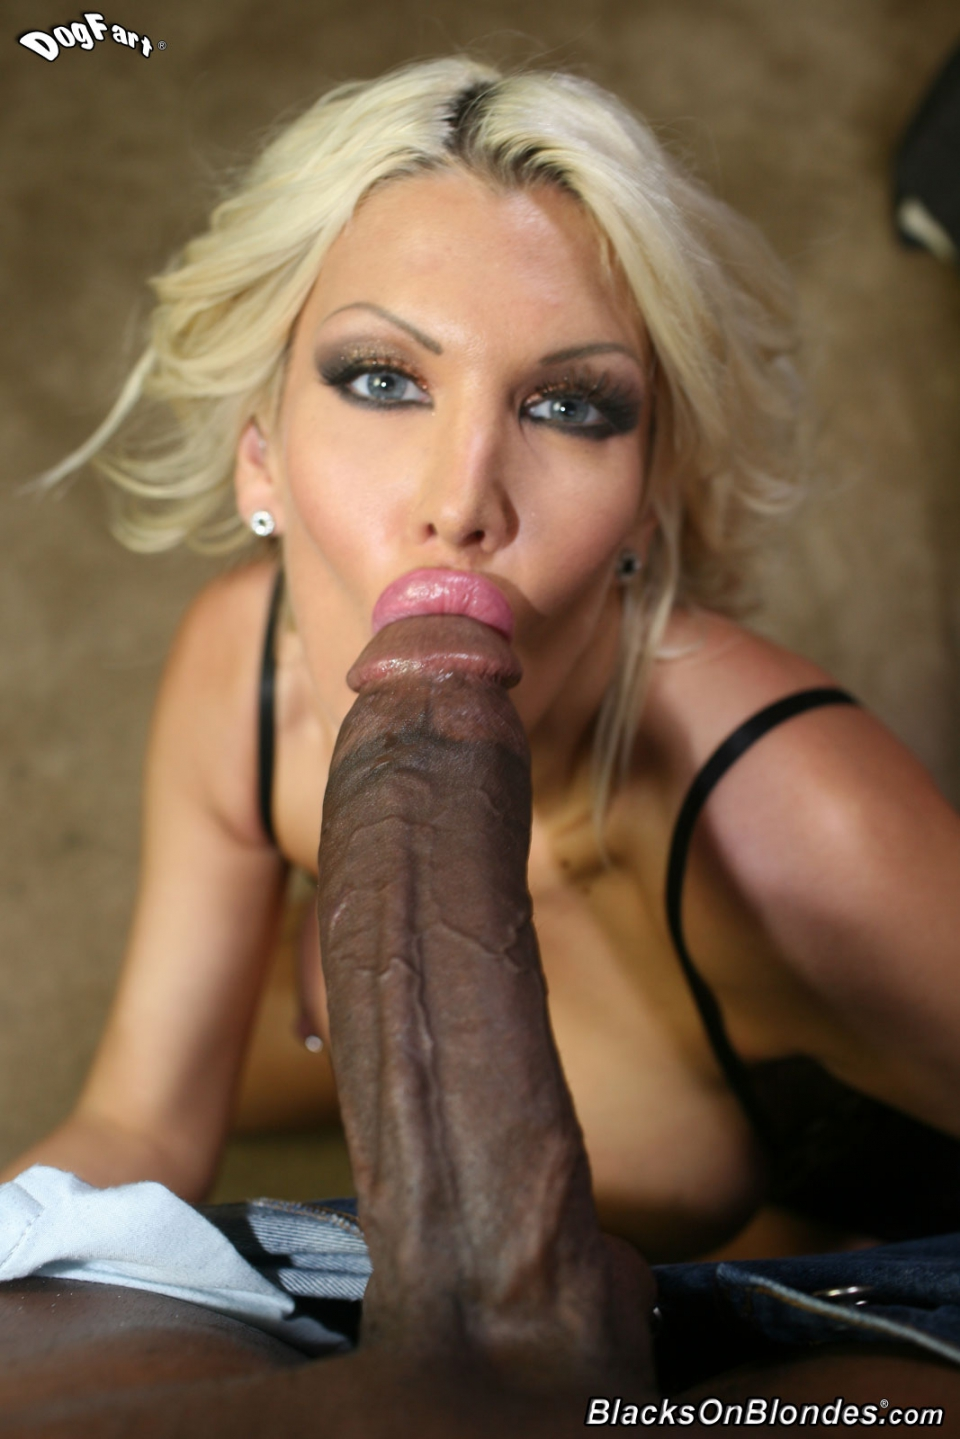 dick sucking lips Big black